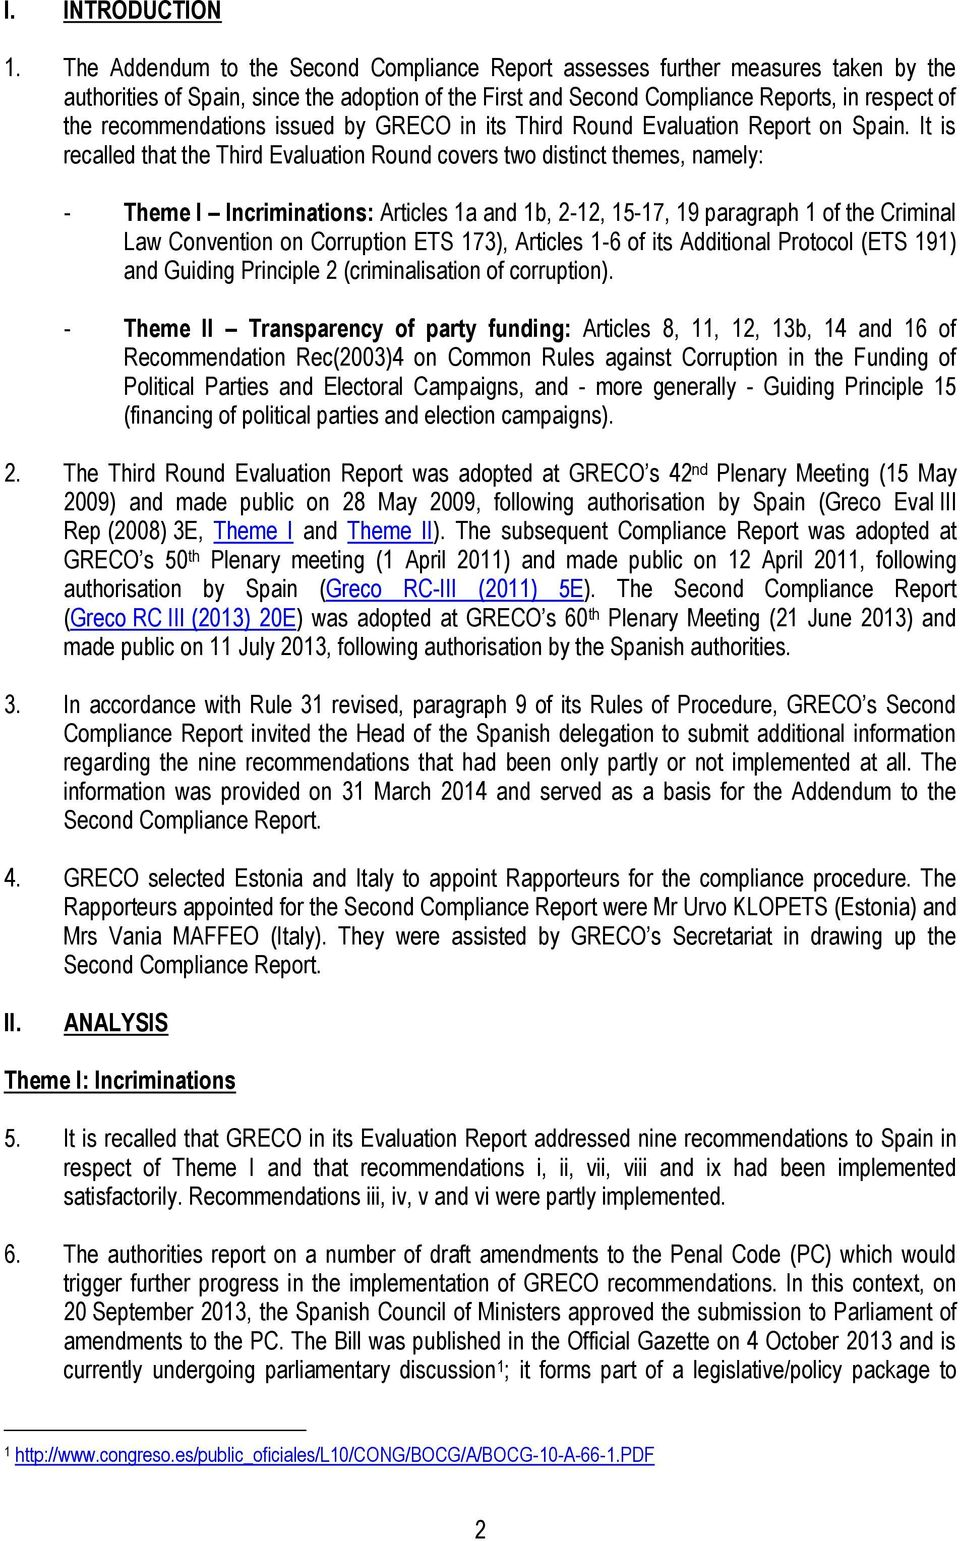 recommendations issued by GRECO in its Third Round Evaluation Report on Spain.